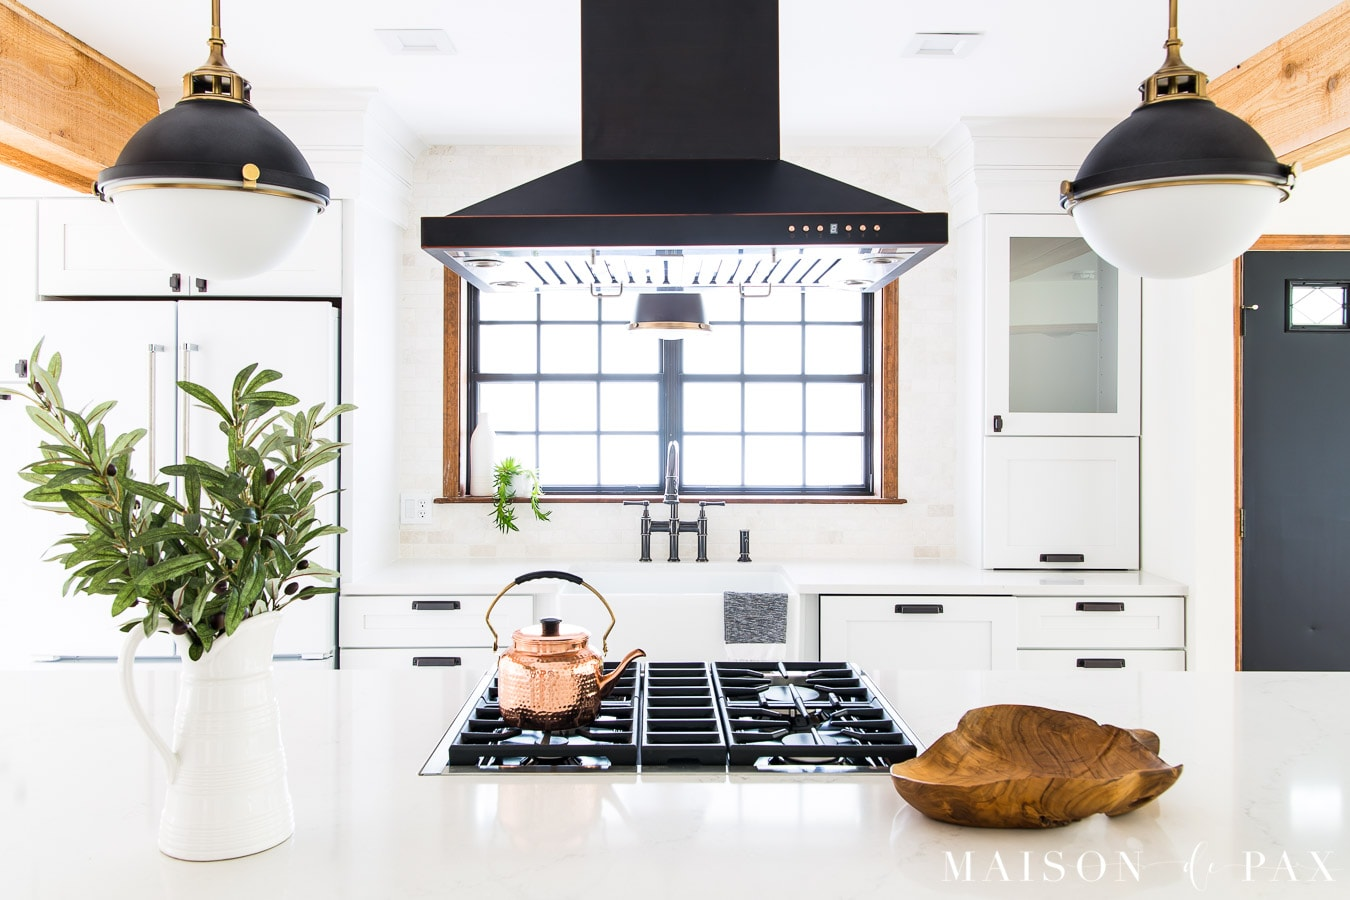 black and white globe lights over kitchen island | Maison de Pax